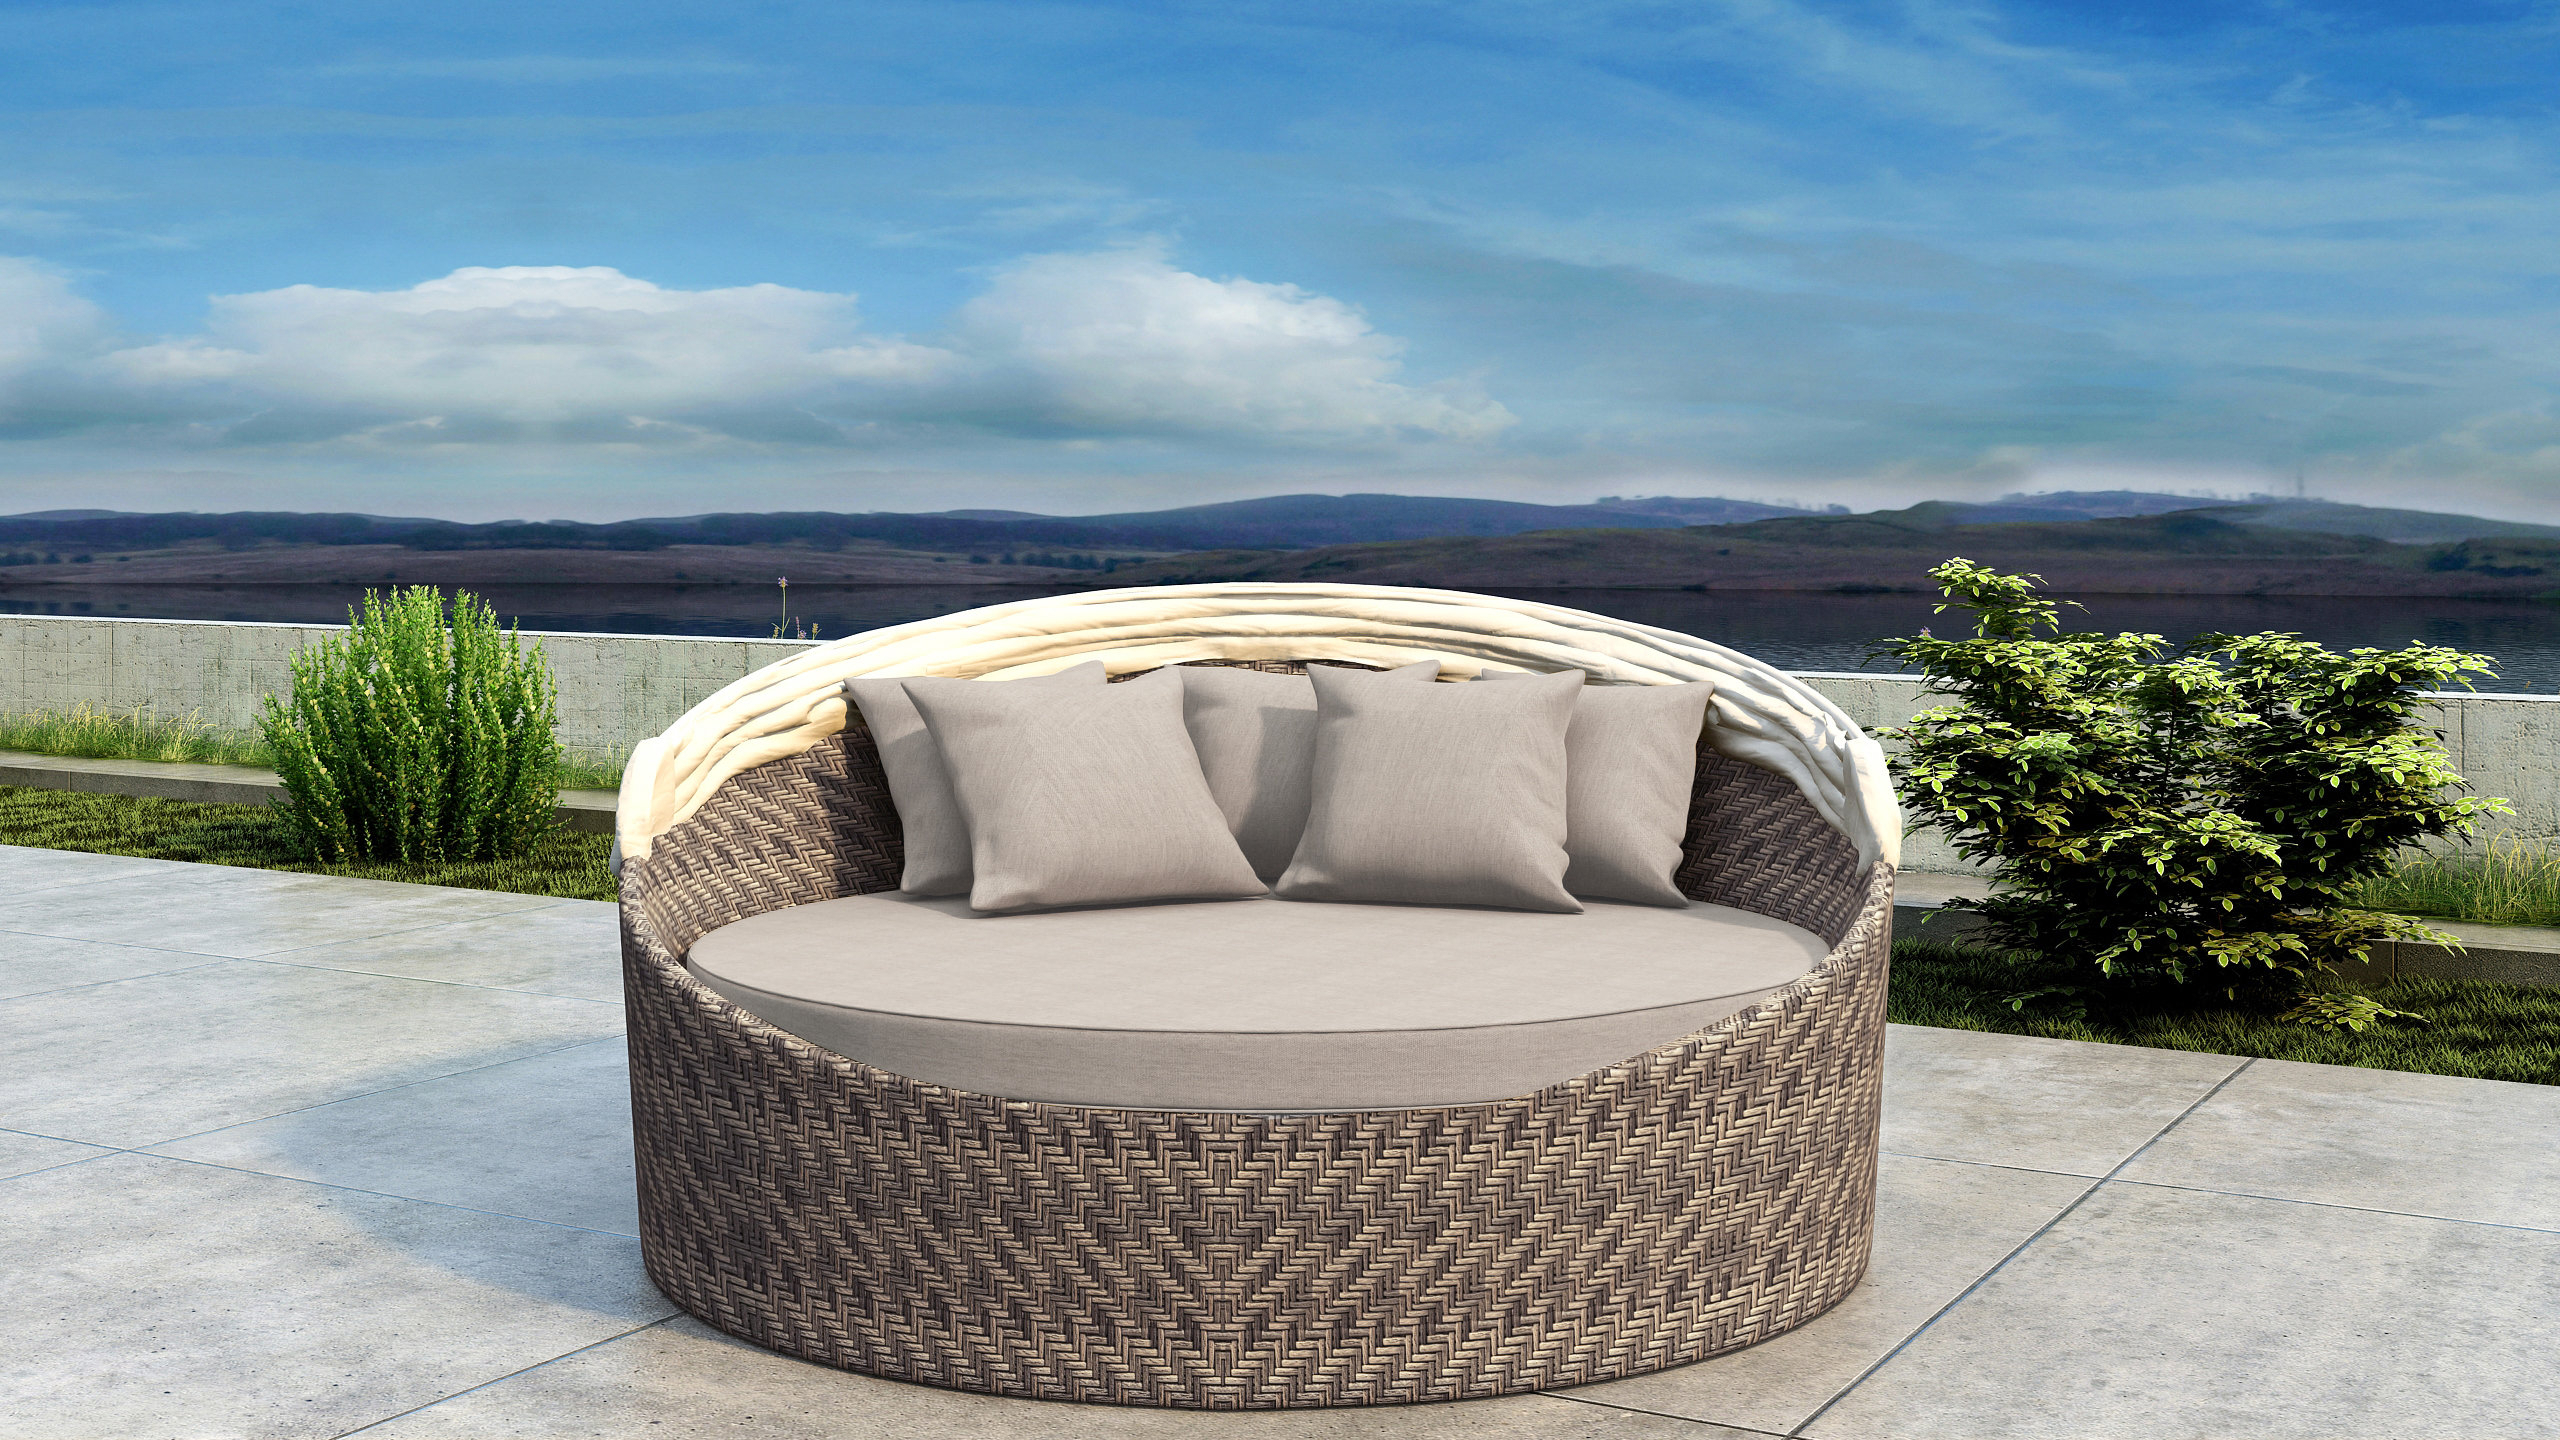 2020 Gillham Patio Daybed With Sunbrella Cushion Inside Grosvenor Bamboo Patio Daybeds With Cushions (Gallery 13 of 20)